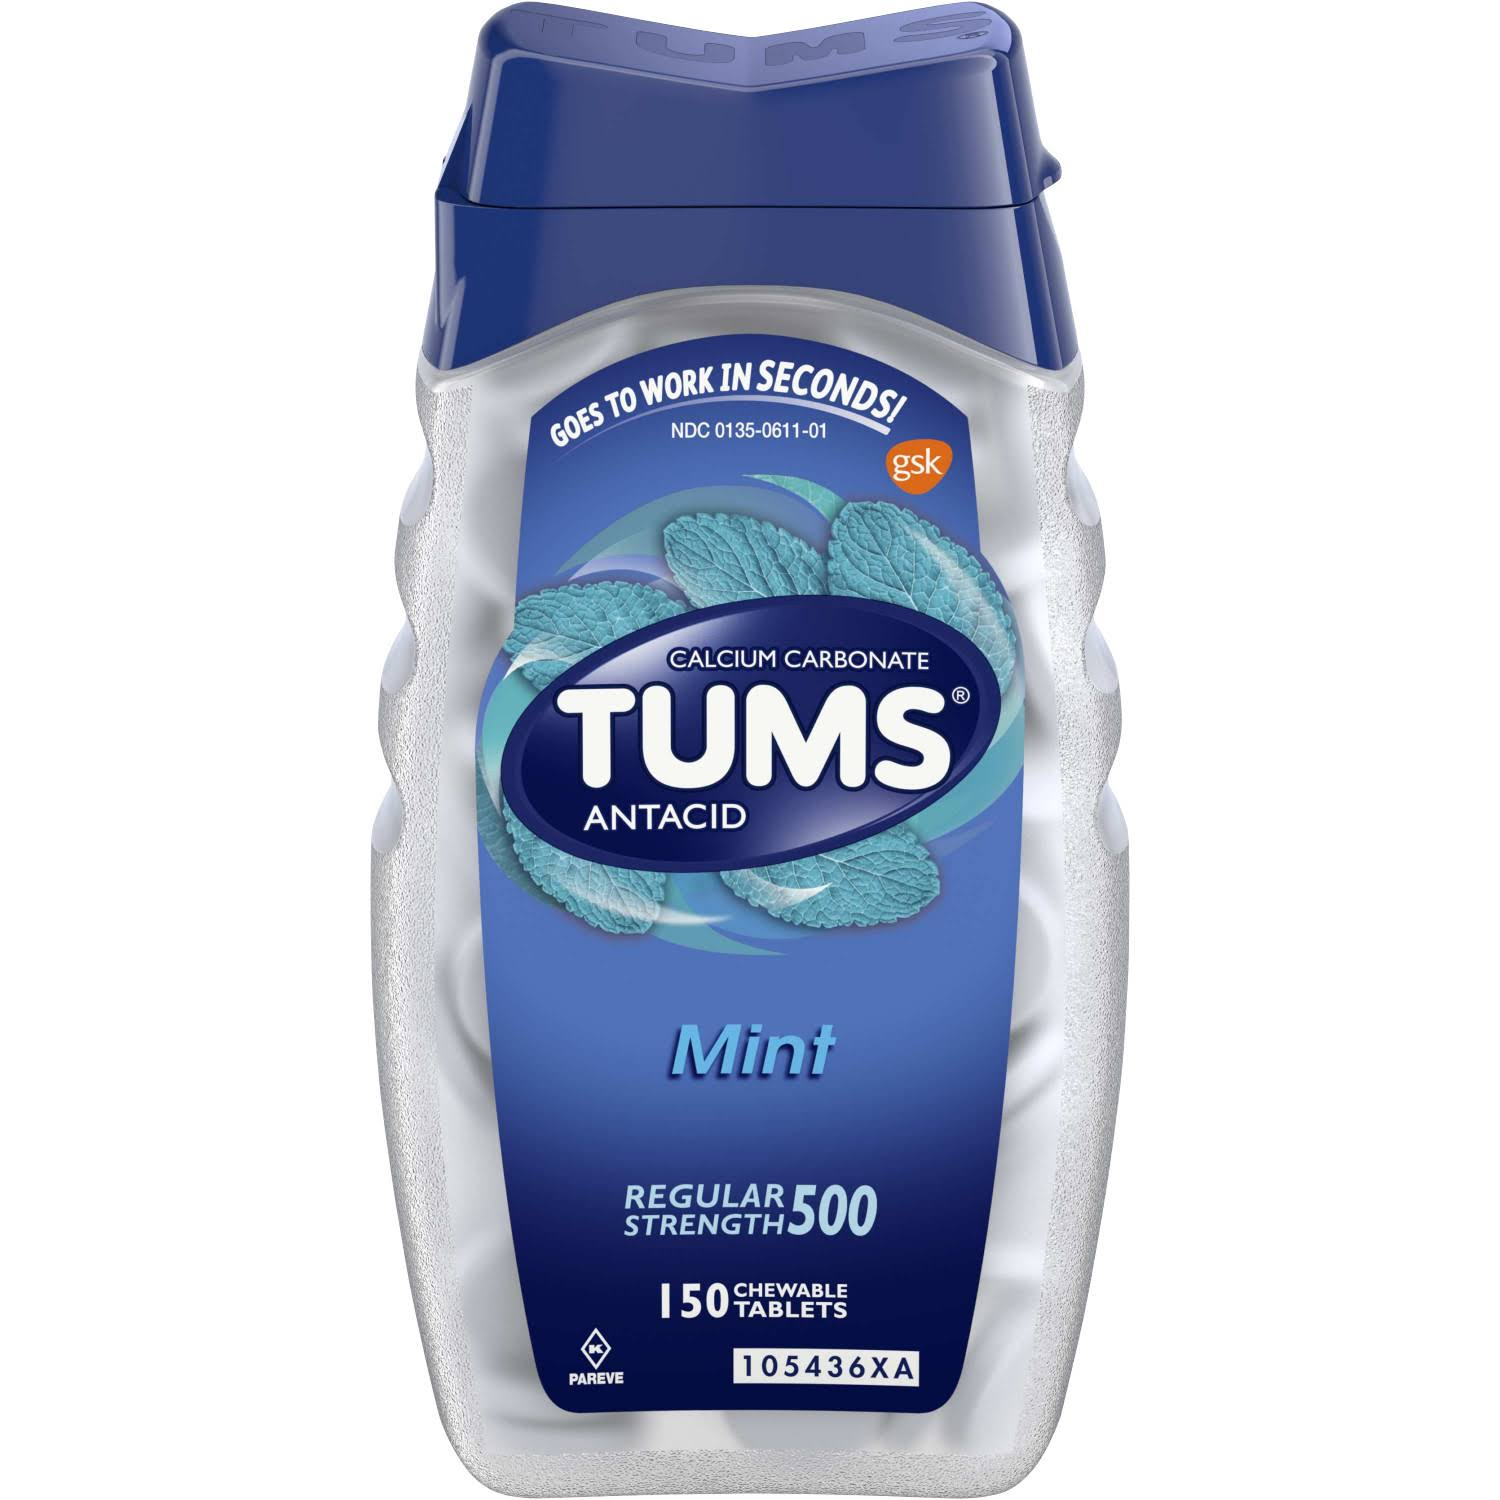 Tums Antacid - Peppermint, 150 Chewable Tablets